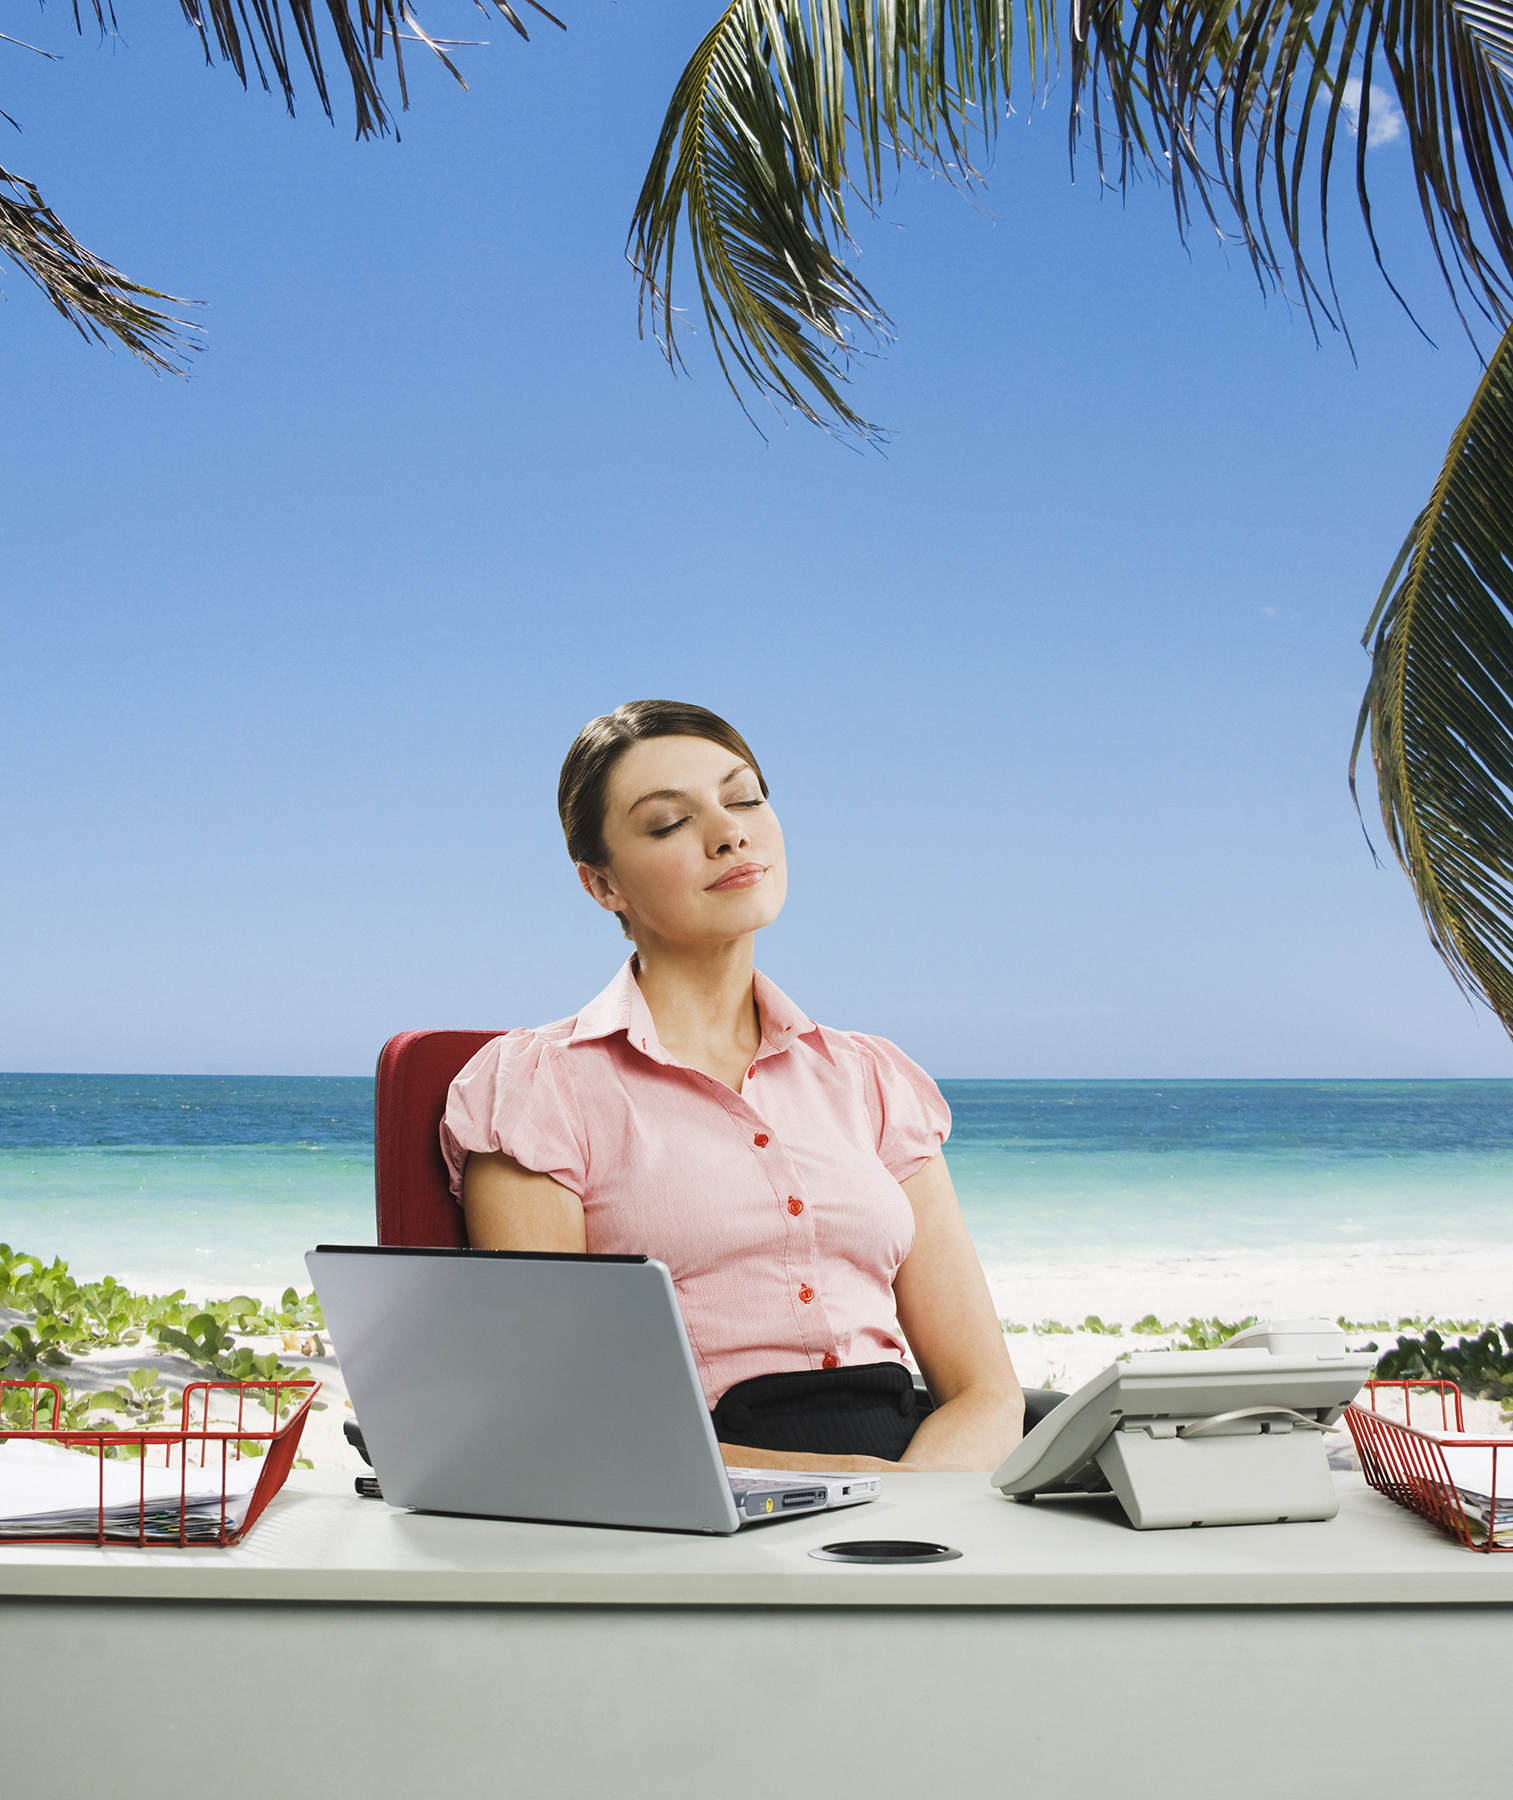 Woman at desk on beach